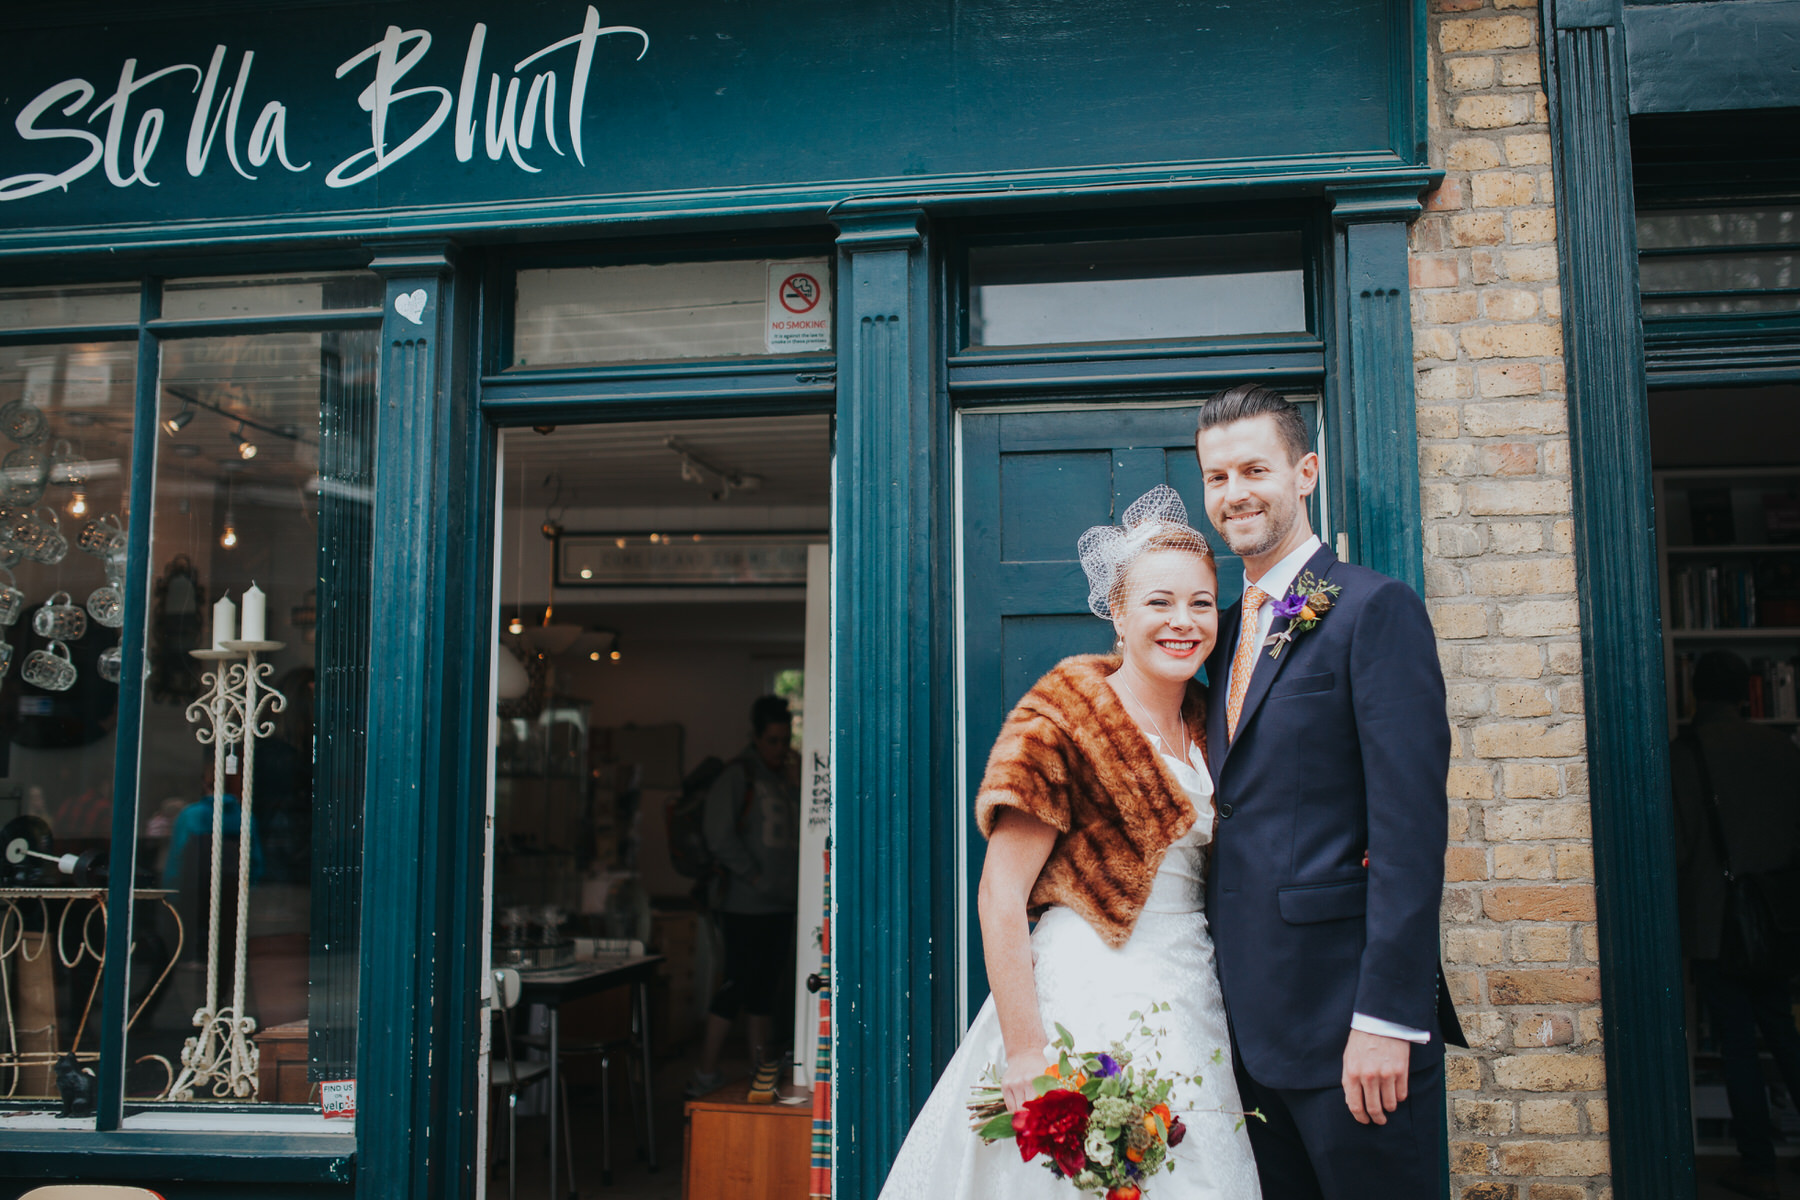 MS-Londesborough-Pub-wedding-Hackney-alternative-photographer-36-wedding-portraits-Broadway-market-quirky-couple-outside-Stella-Blunt-shop.jpg